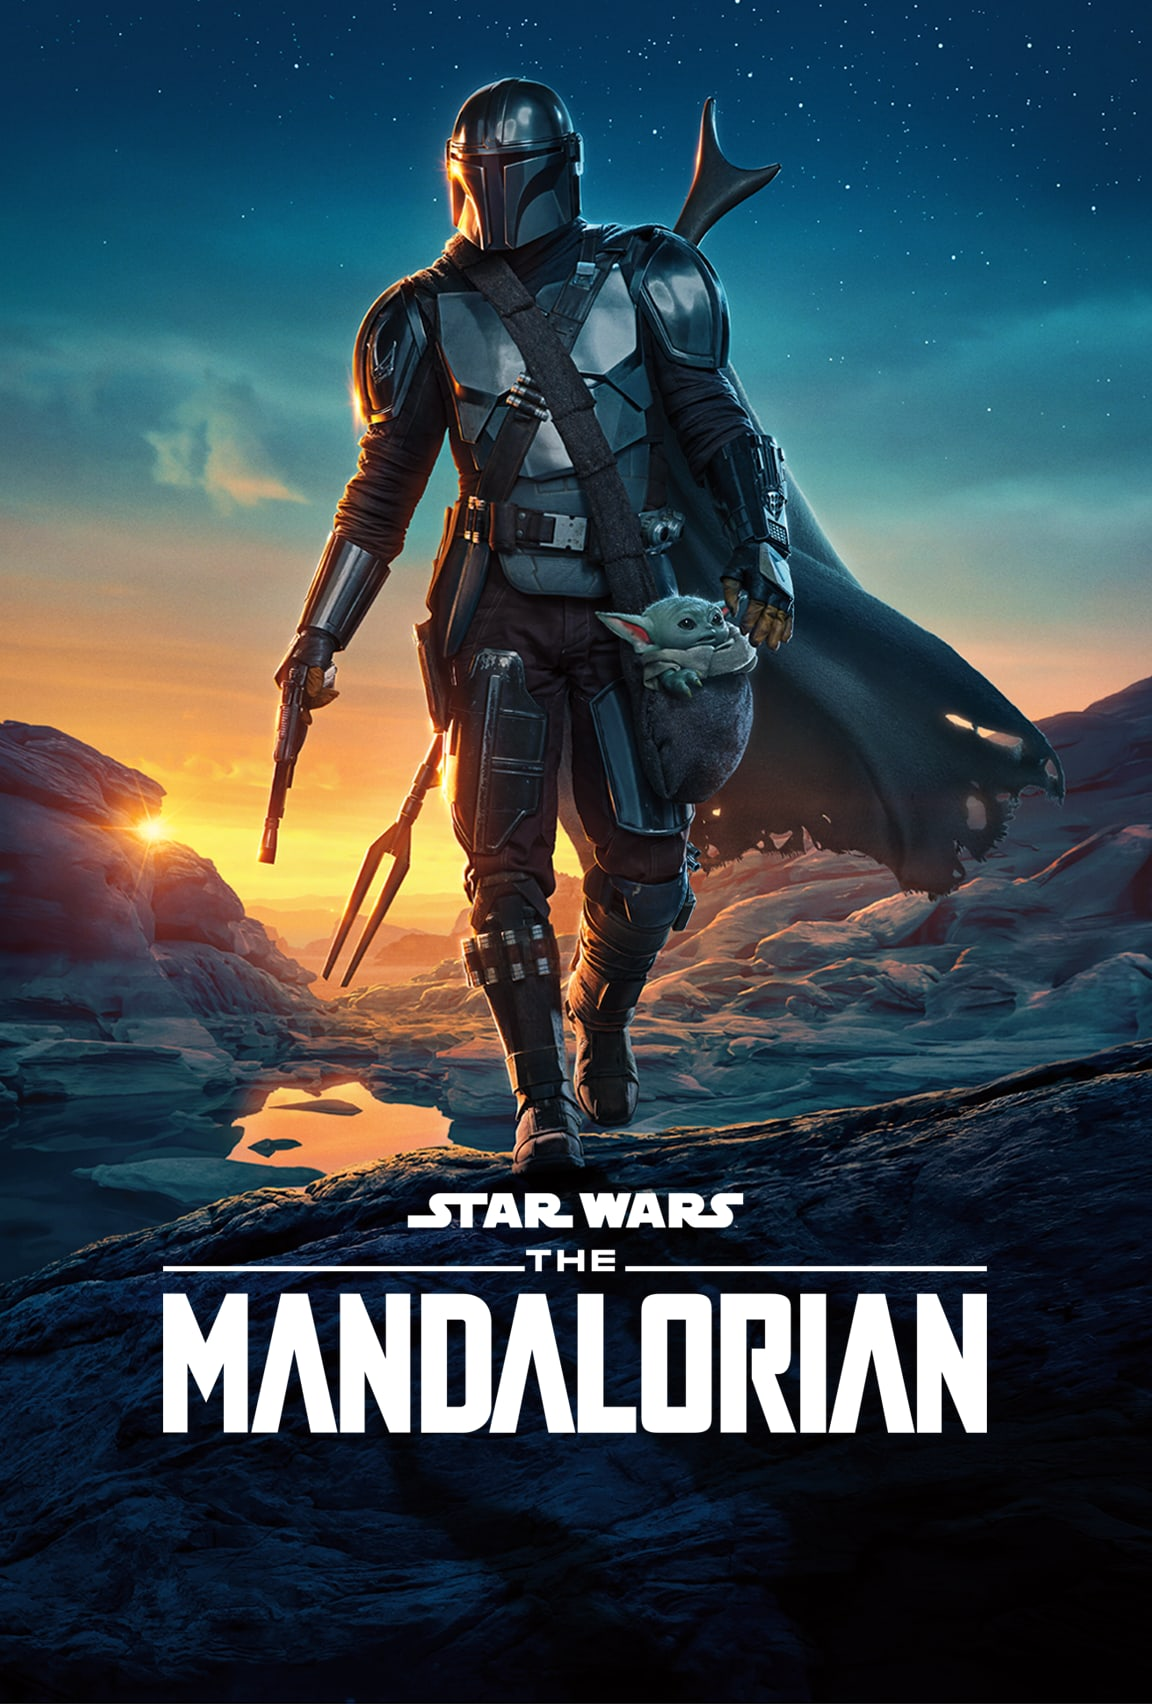 The Mandalorian Seasons 1 and 2 streaming now only on Disney Plus